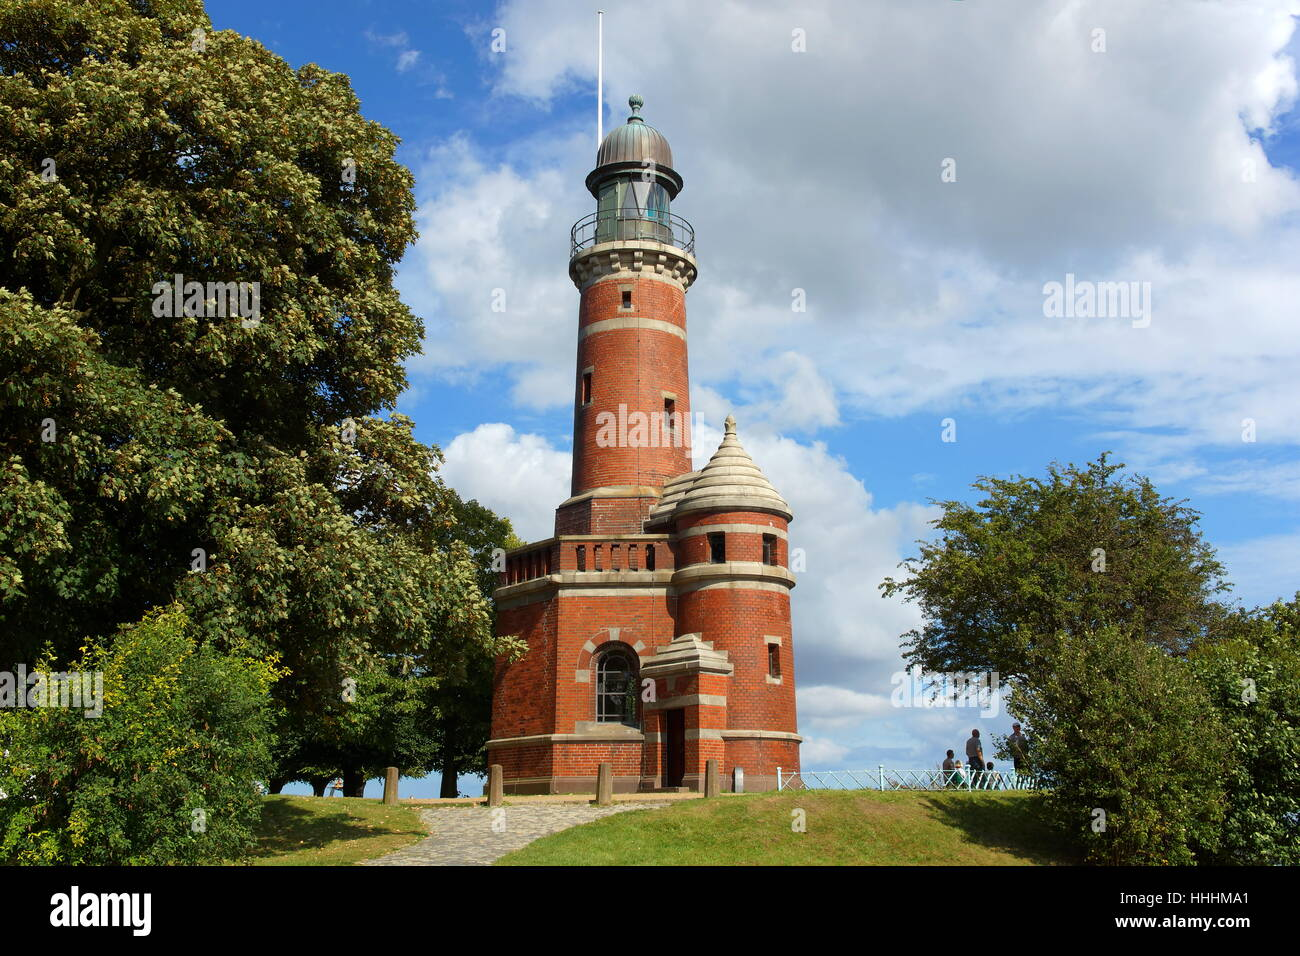 keel, emblem, kiel canal, lighthouse, tower, monument, tree, trees, Stock Photo